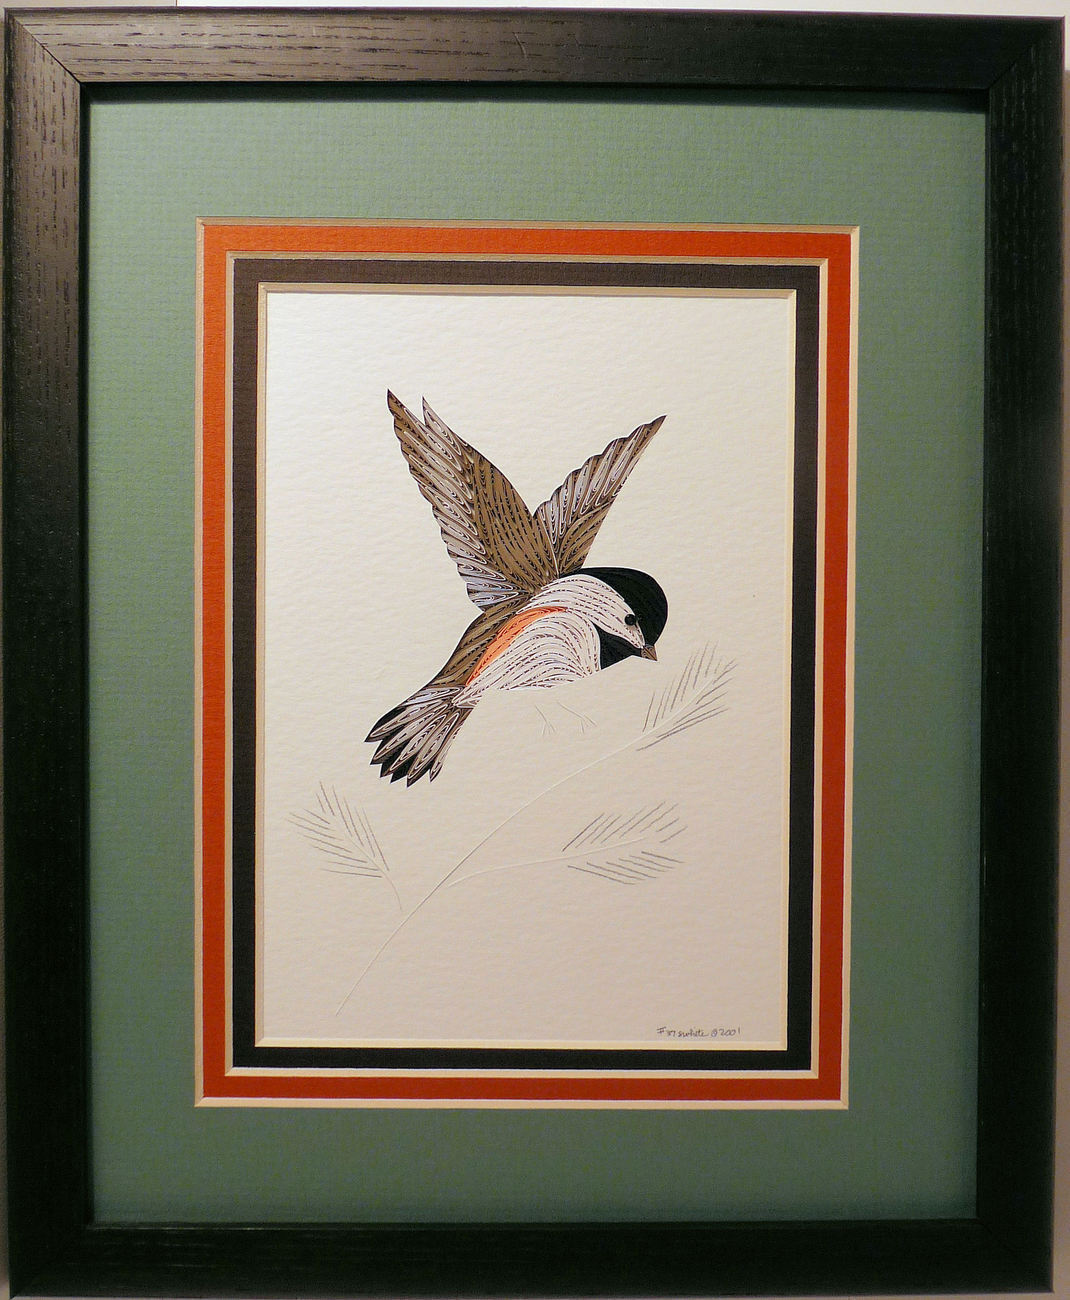 Quilled Chickadee in Flight handcrafted wall art framed NH